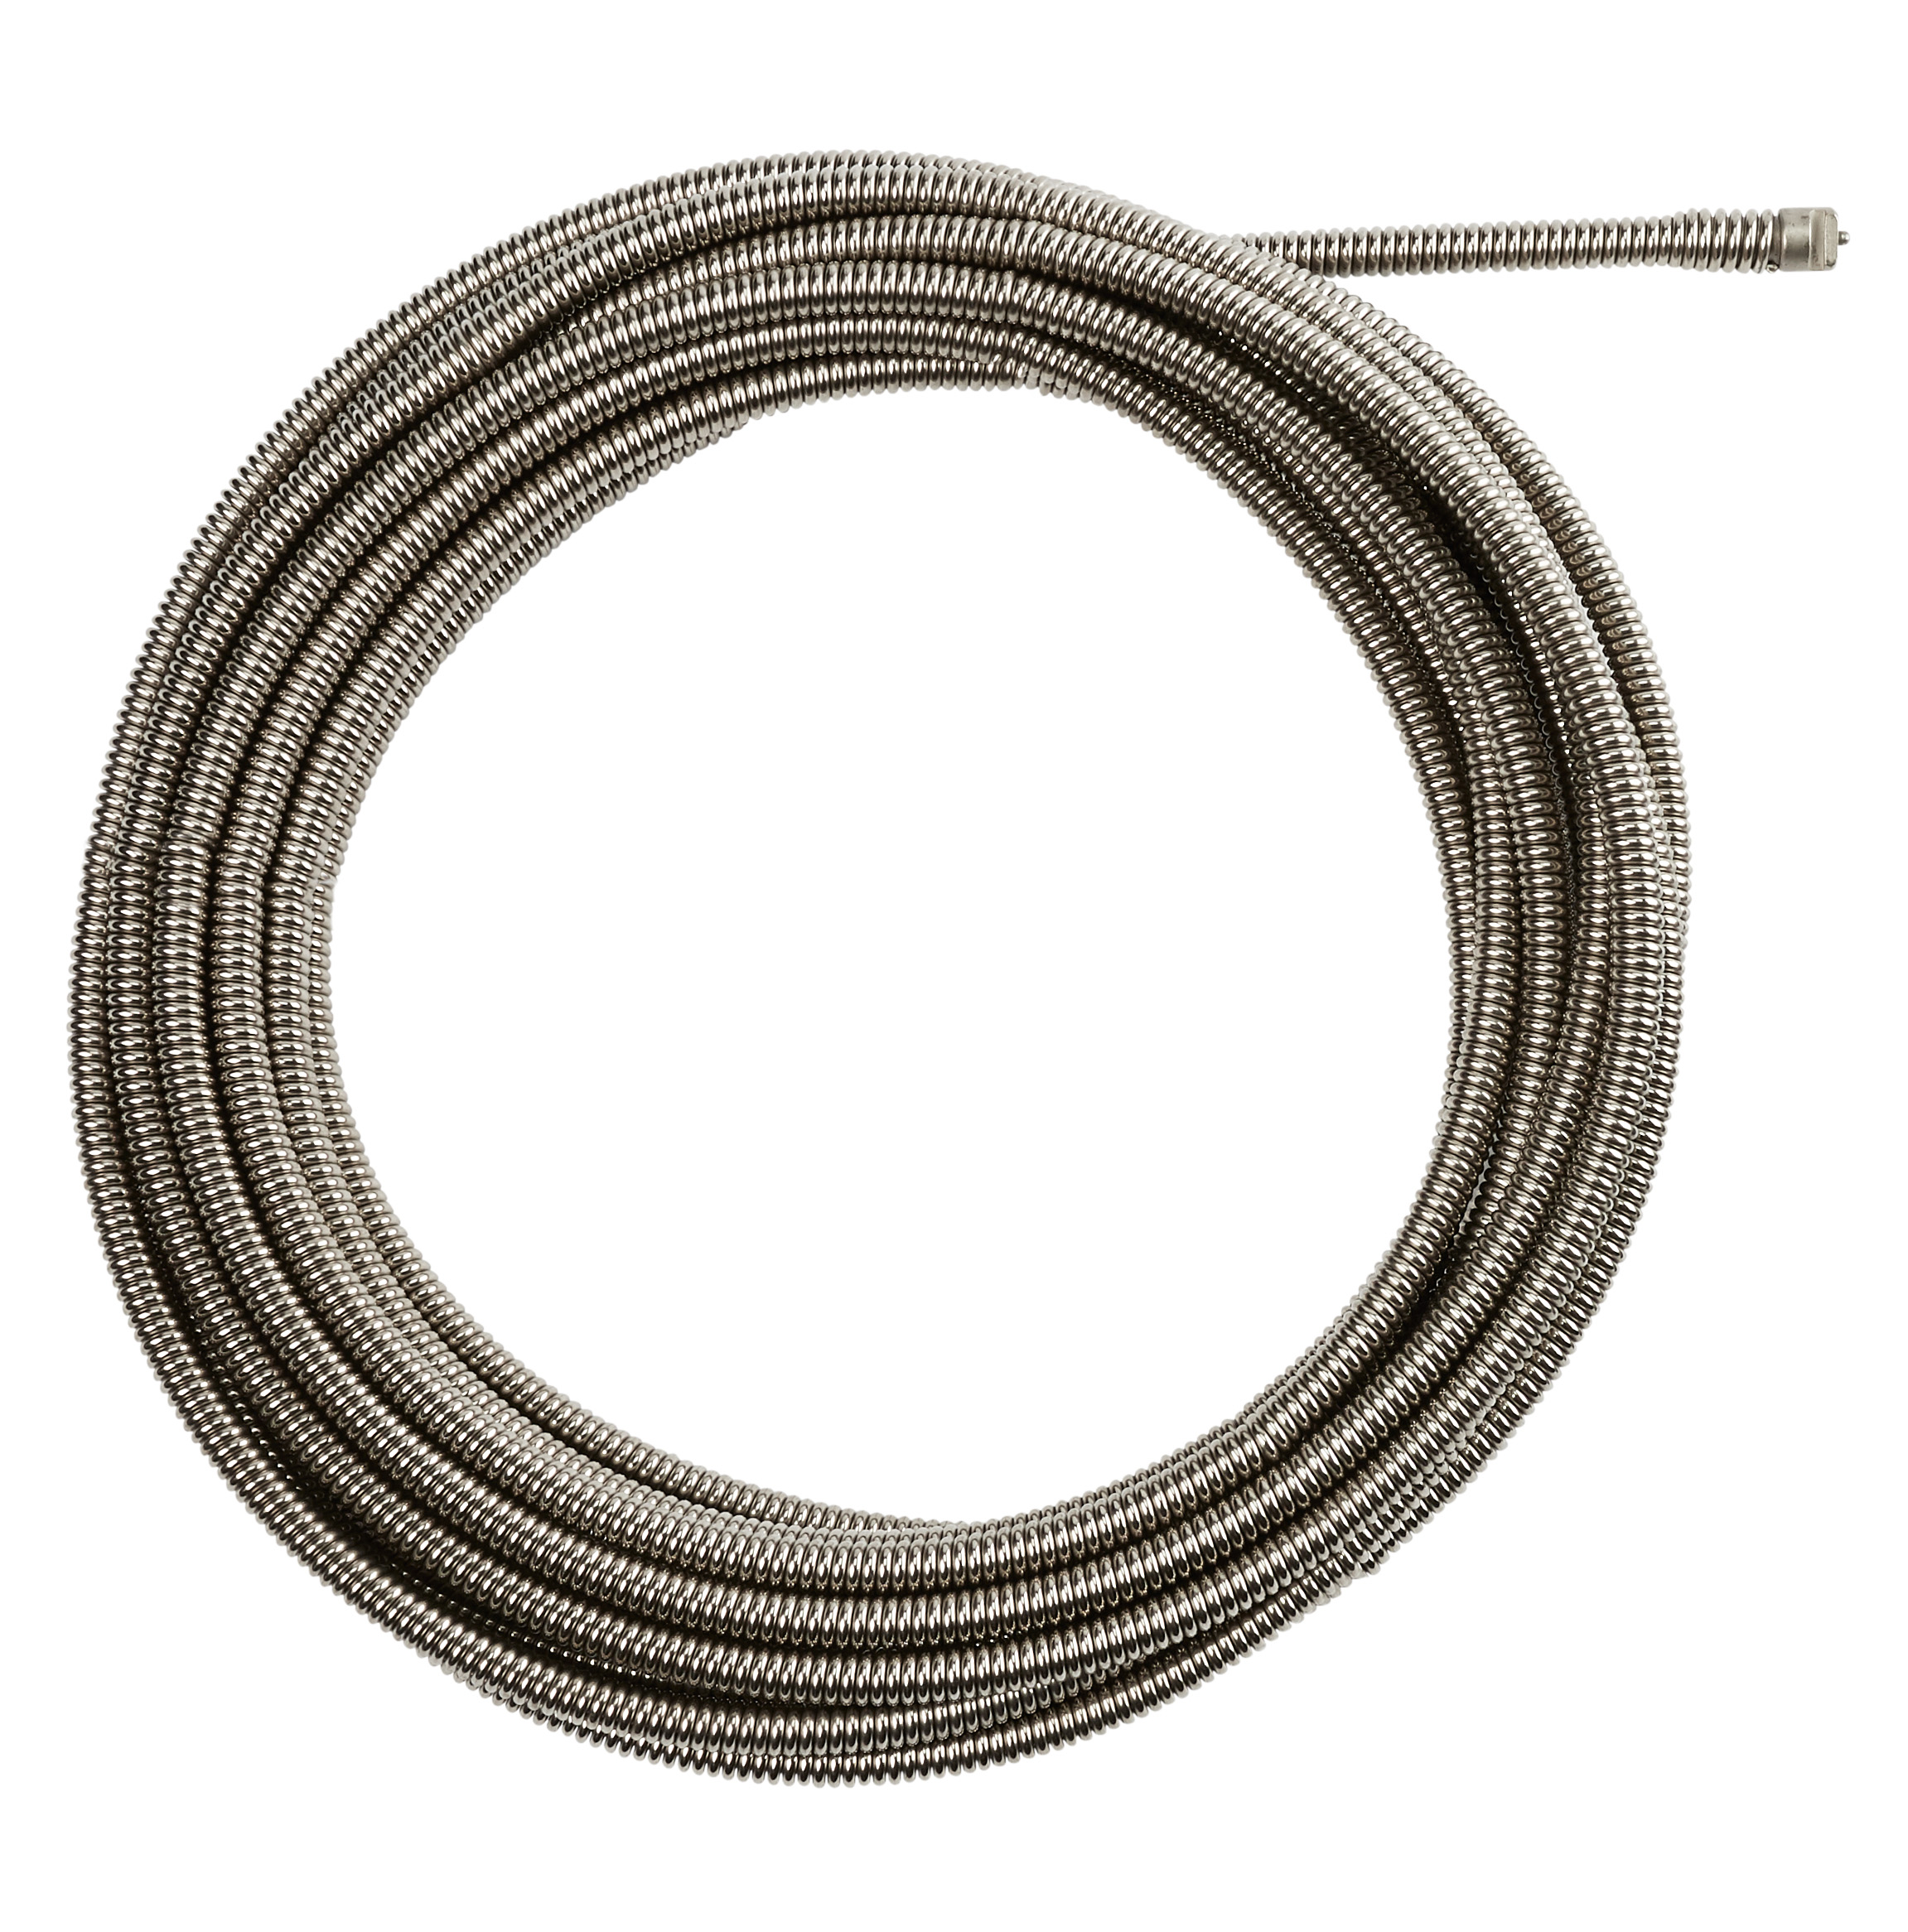 Milwaukee® 48-53-2676 Inner Core Coupling Drain Cleaning Cable, 3/8 in, Steel, For Use With Drain Cleaning Machines, 1-1/4 to 2-1/2 in Drain Line